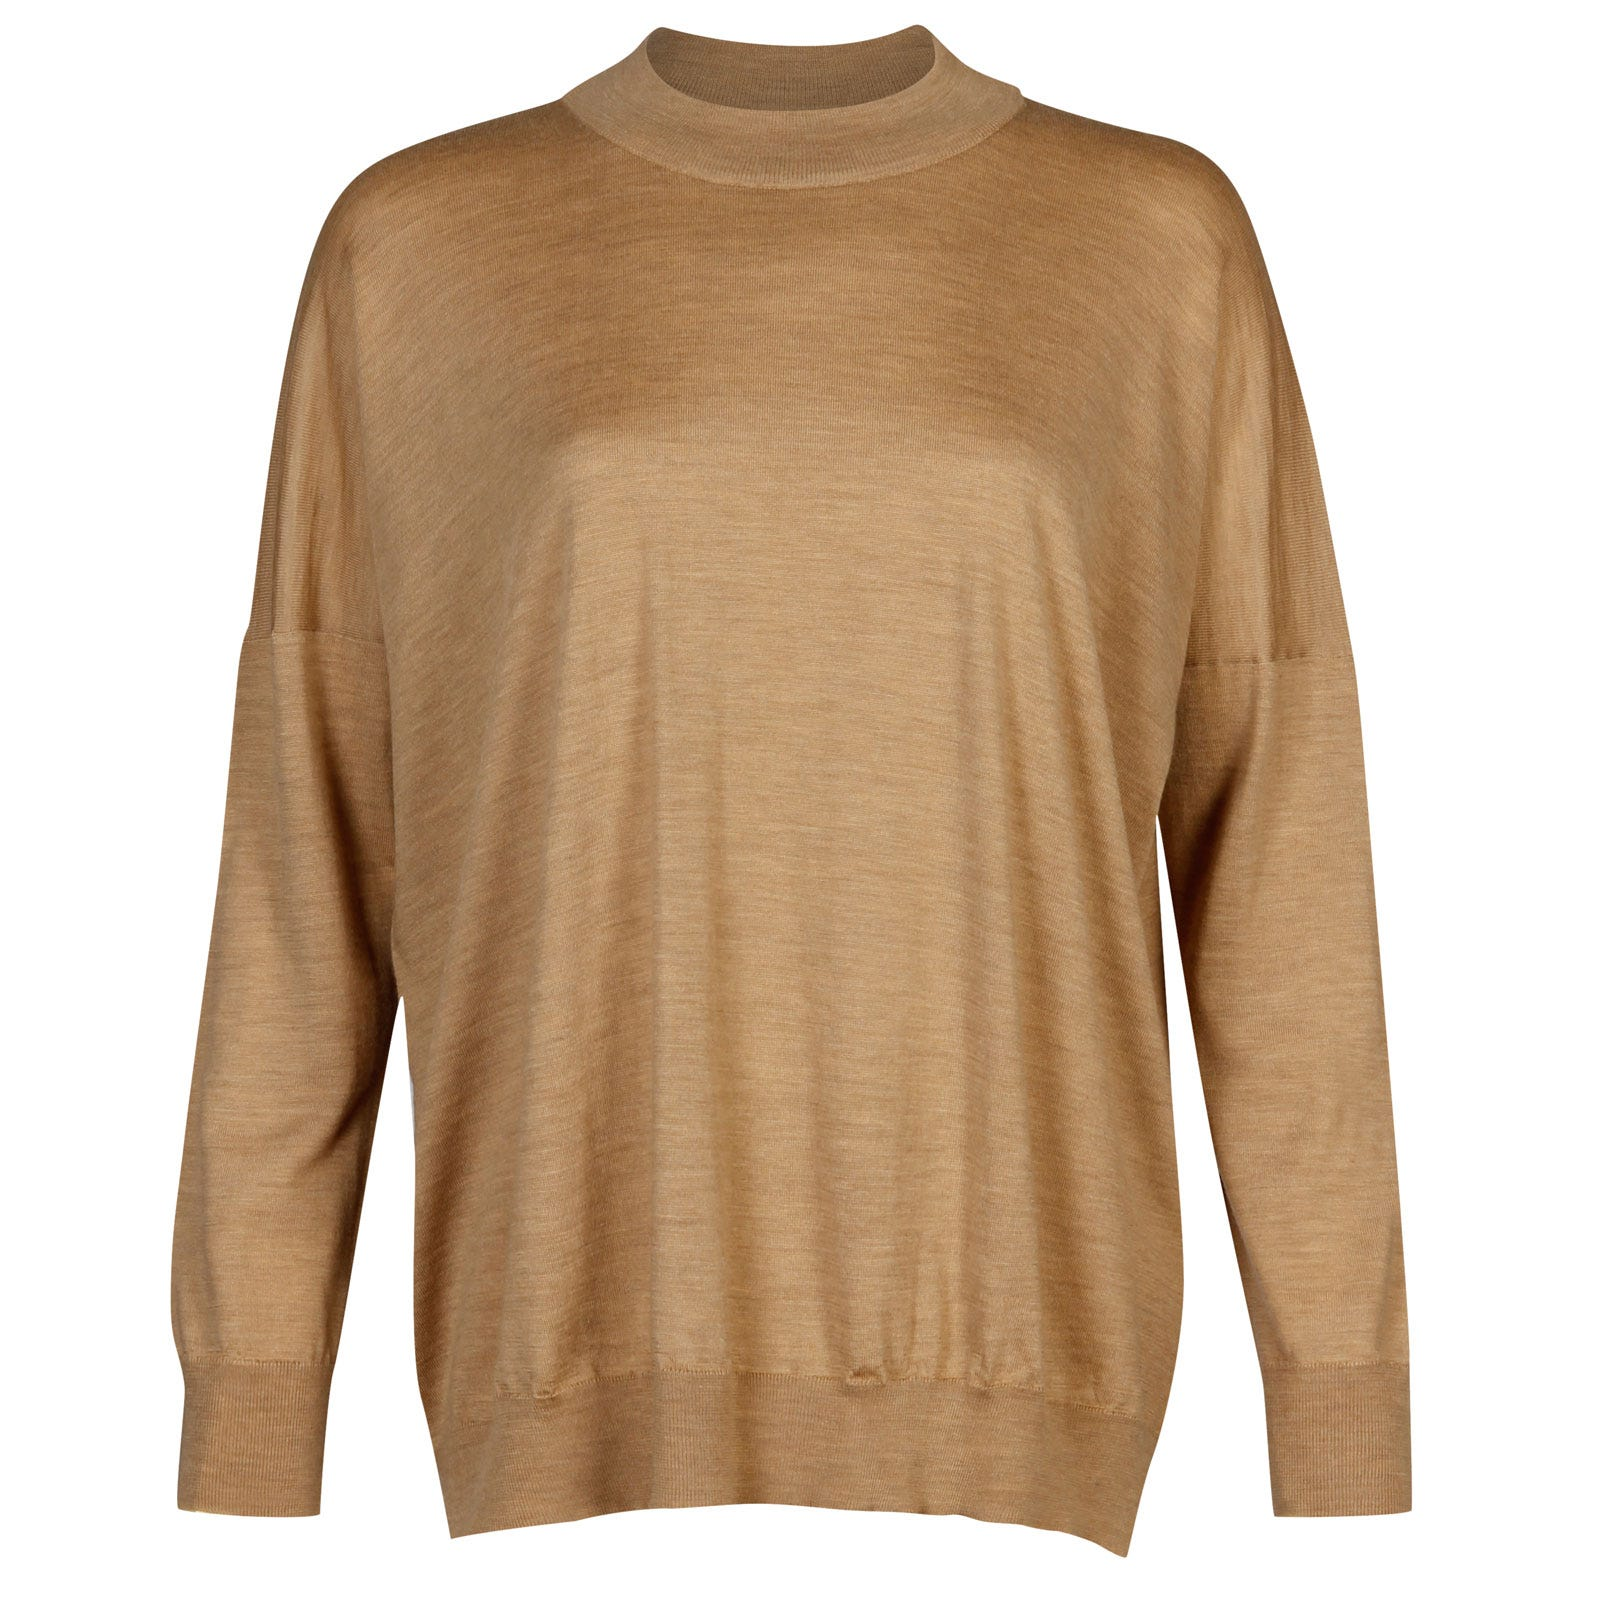 John Smedley Osha Merino Wool and Cashmere Sweater in Dark Camel-L